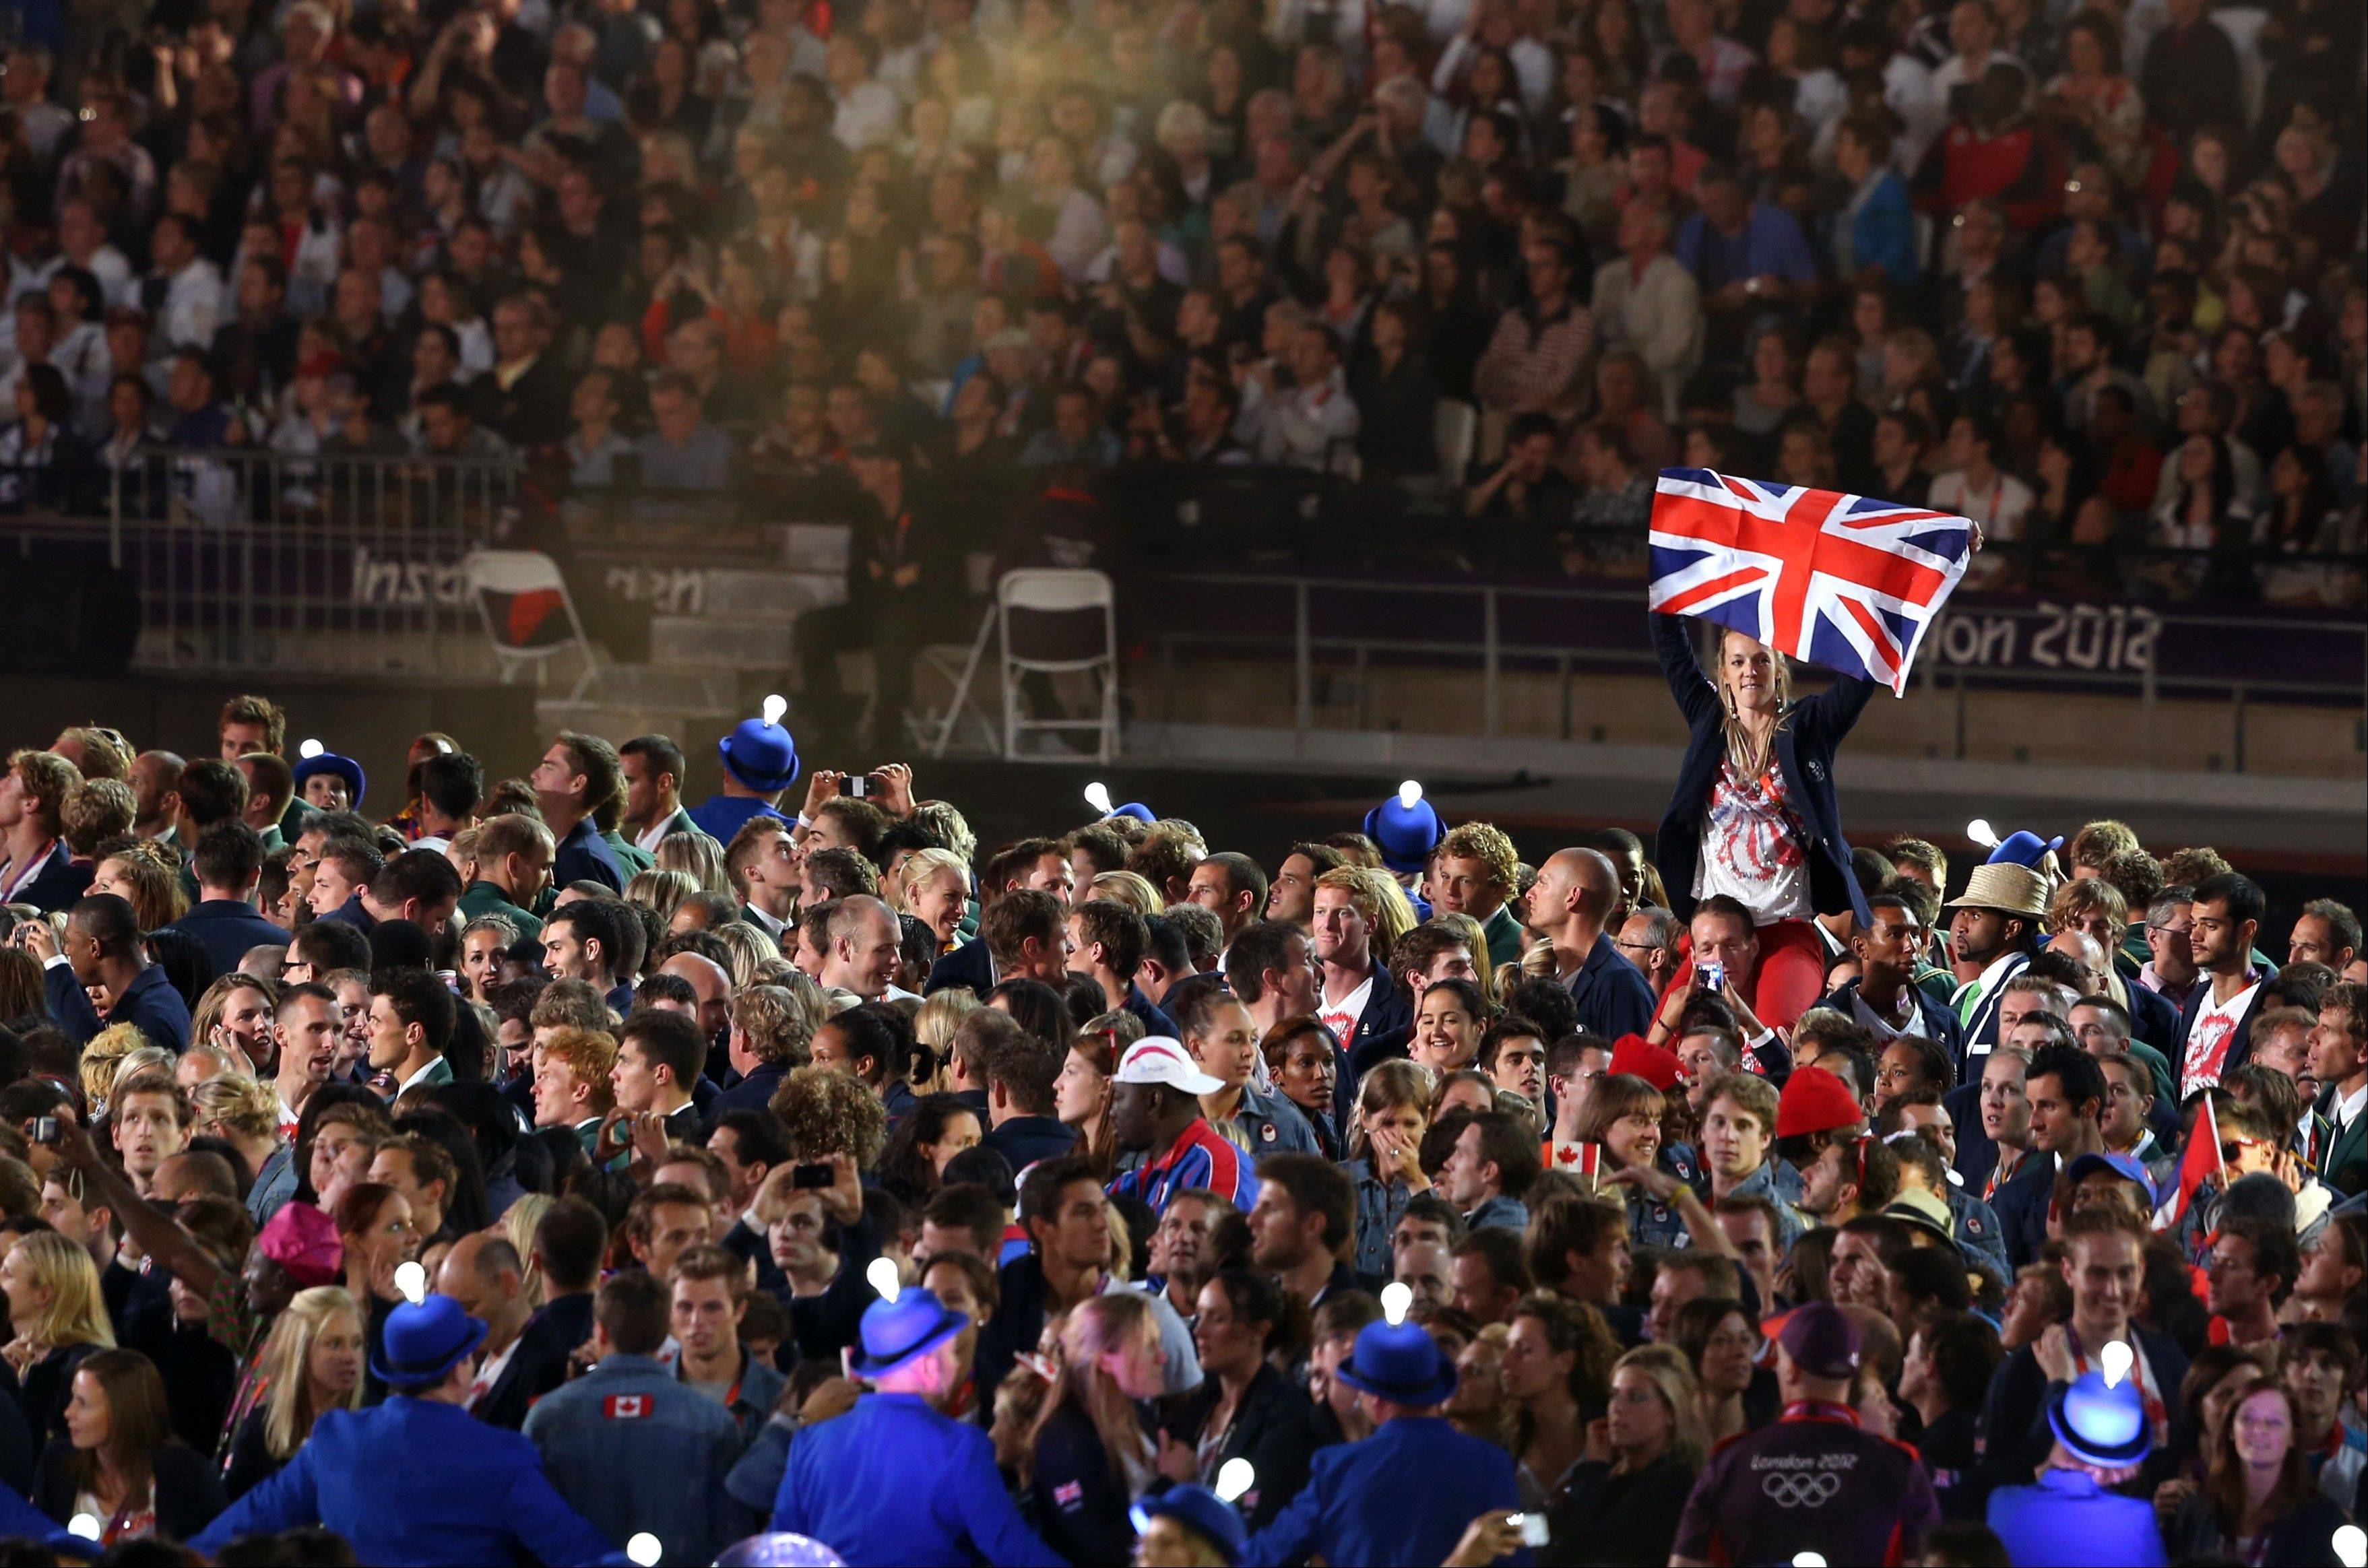 An athlete holds up the British flag during the Closing Ceremony at the 2012 Summer Olympics.